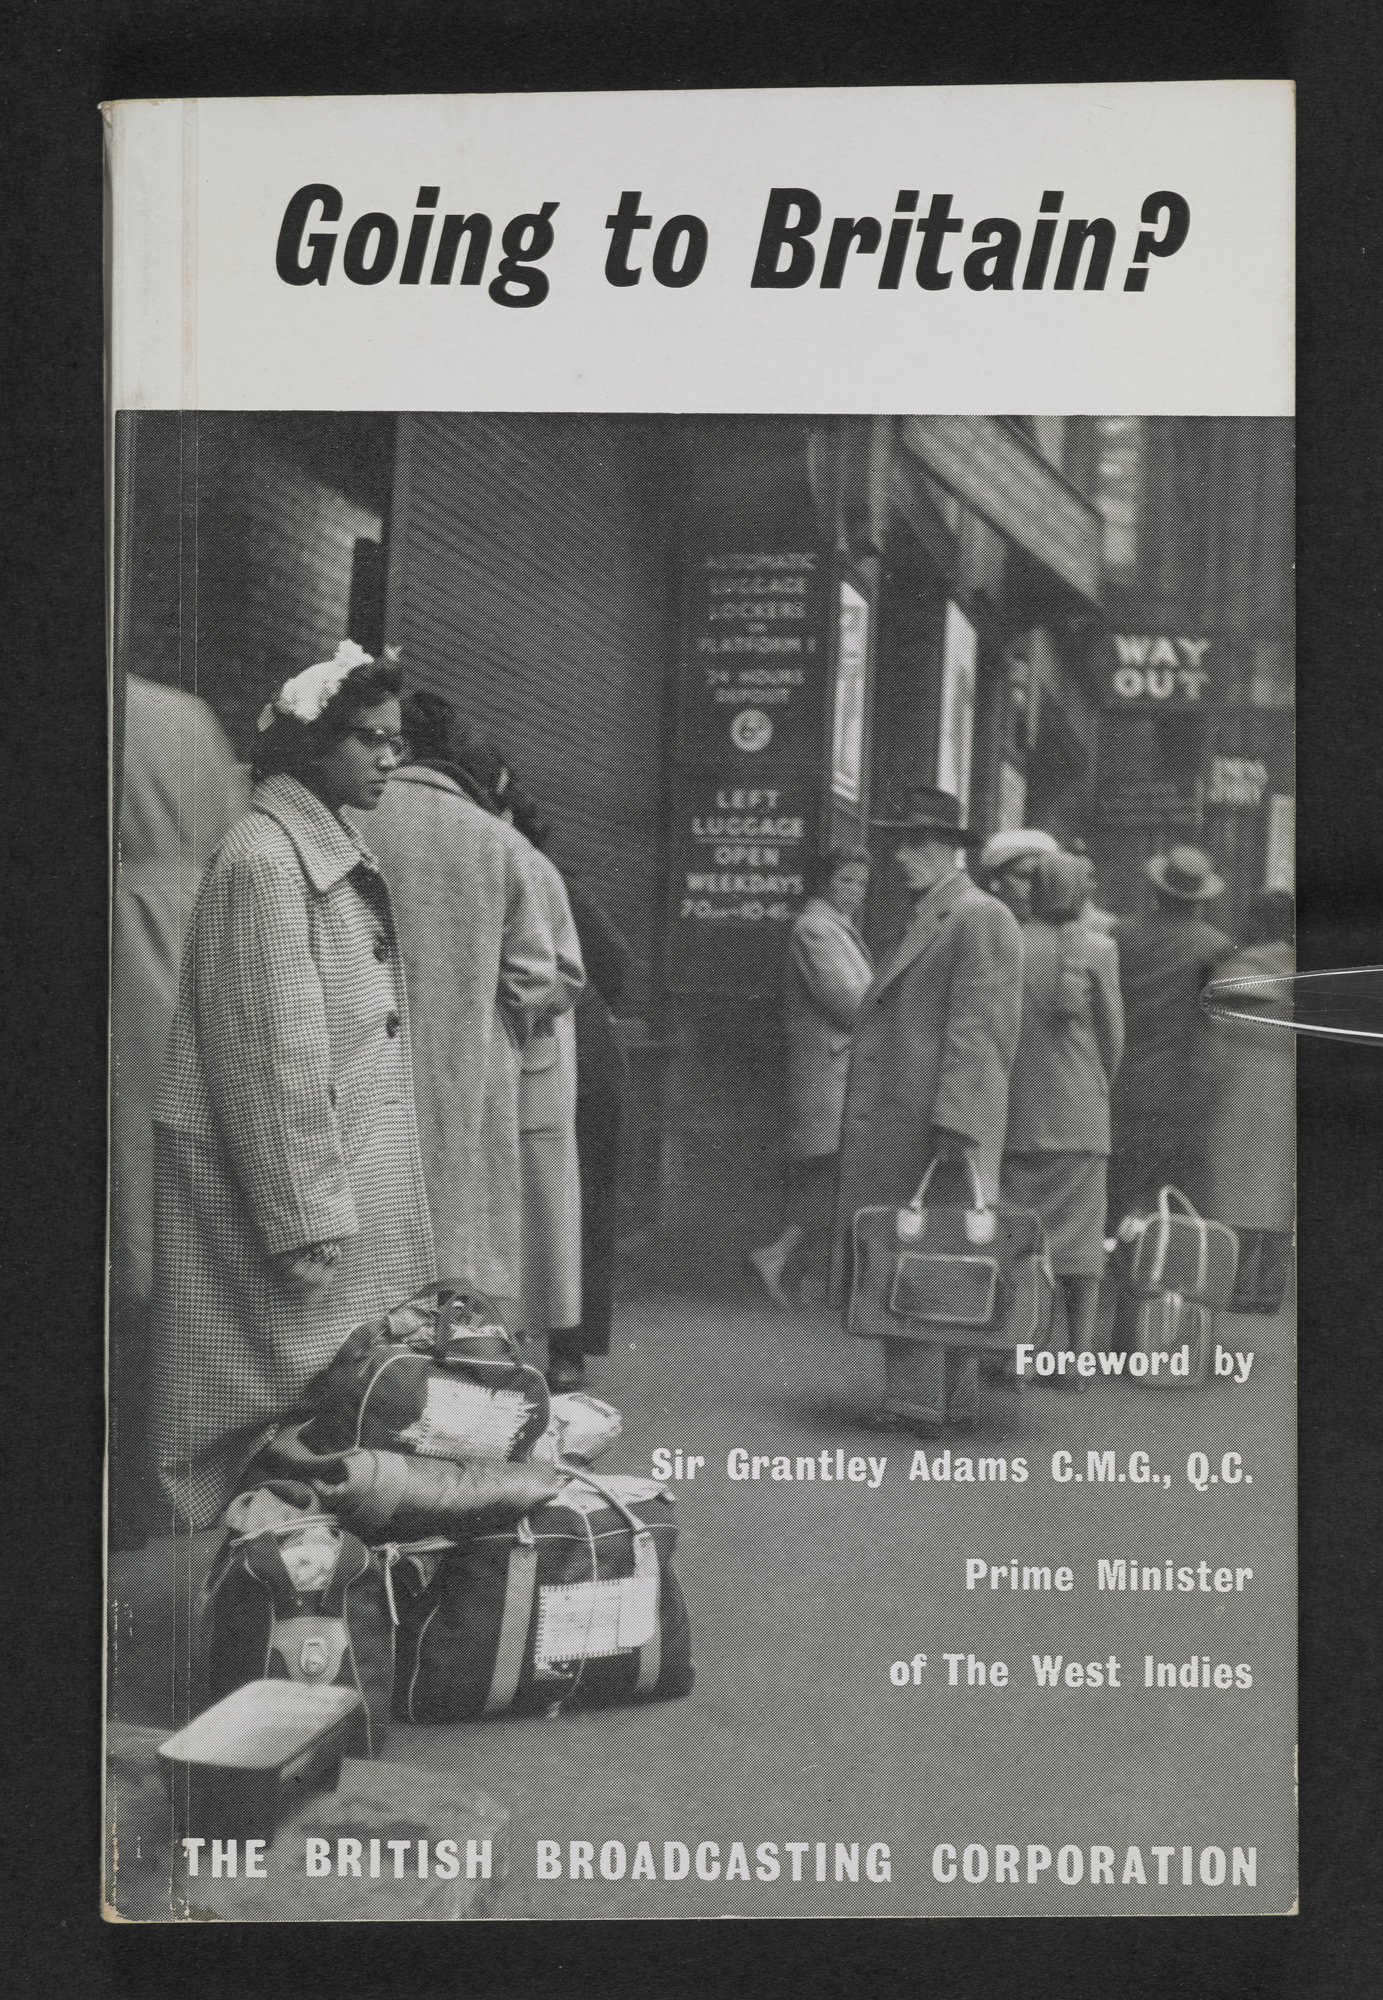 Front cover for the BBC pamphlet, Going To Britain?, featuring a photograph of a Caribbean woman in a coat standing with luggage next to a train station exit